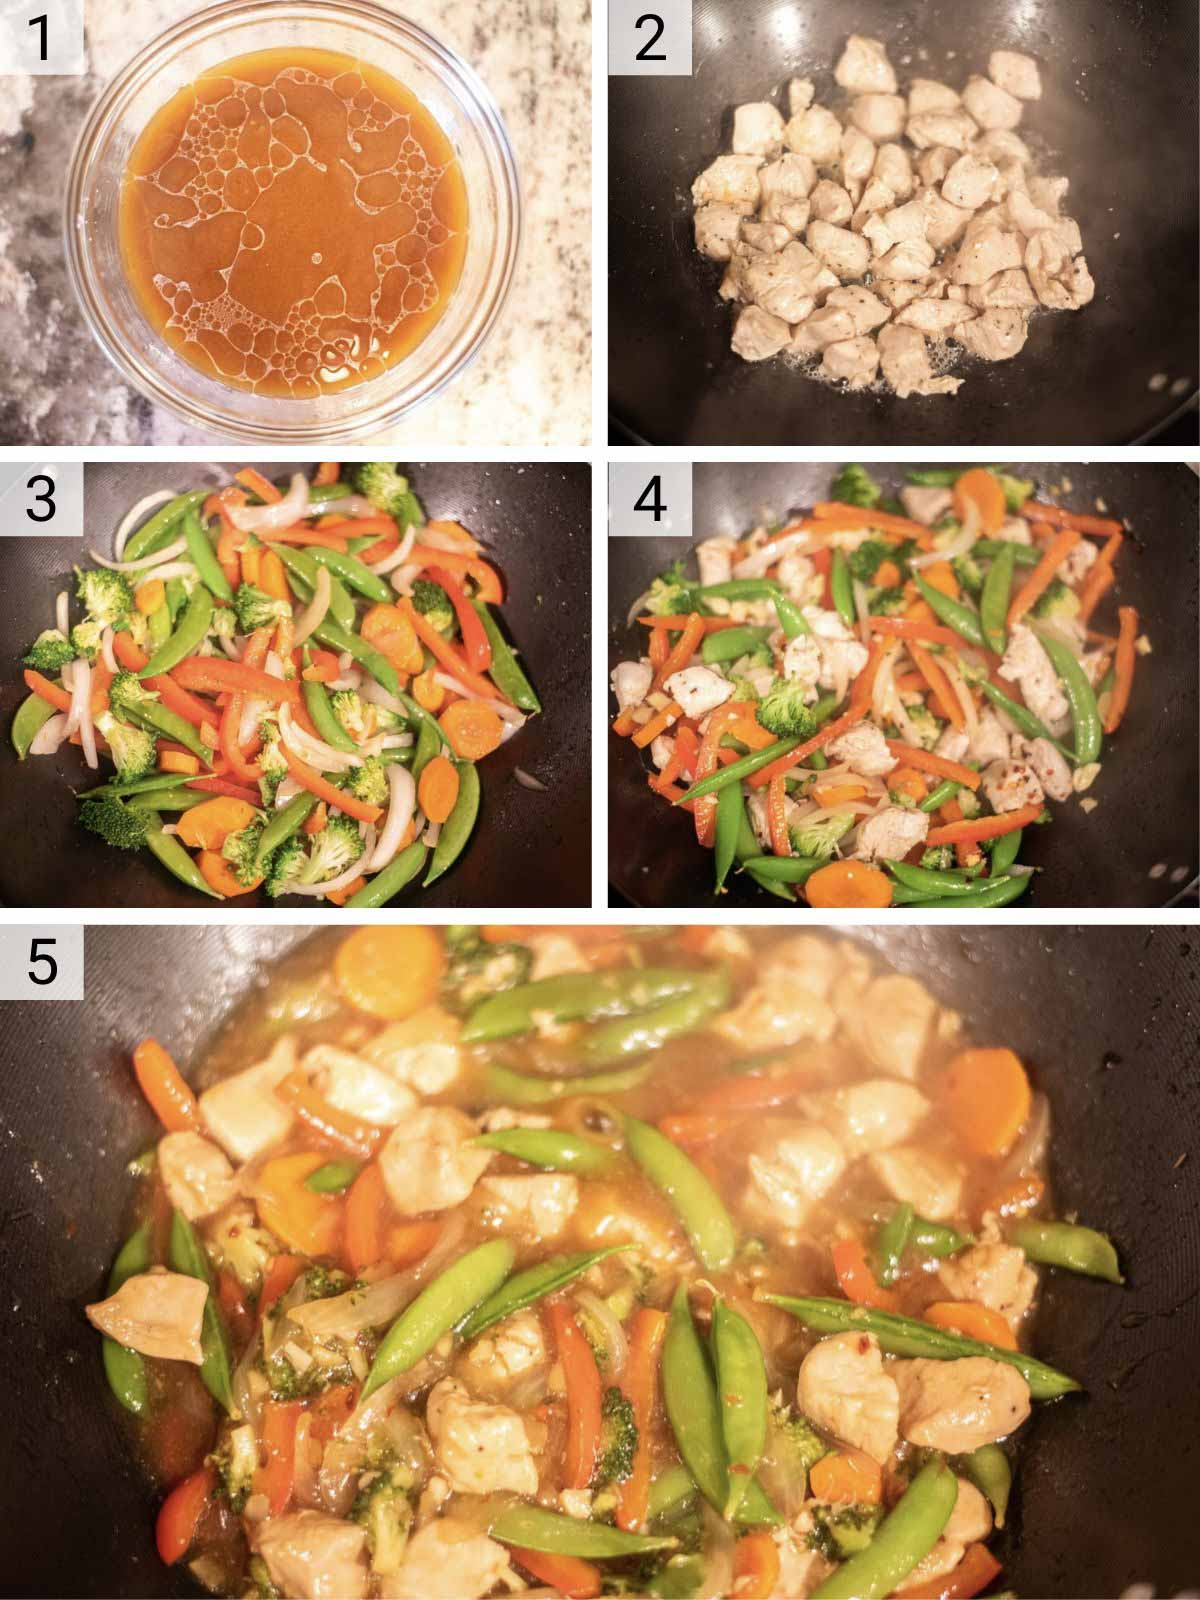 process shots of how to make chicken and veggie stir fry